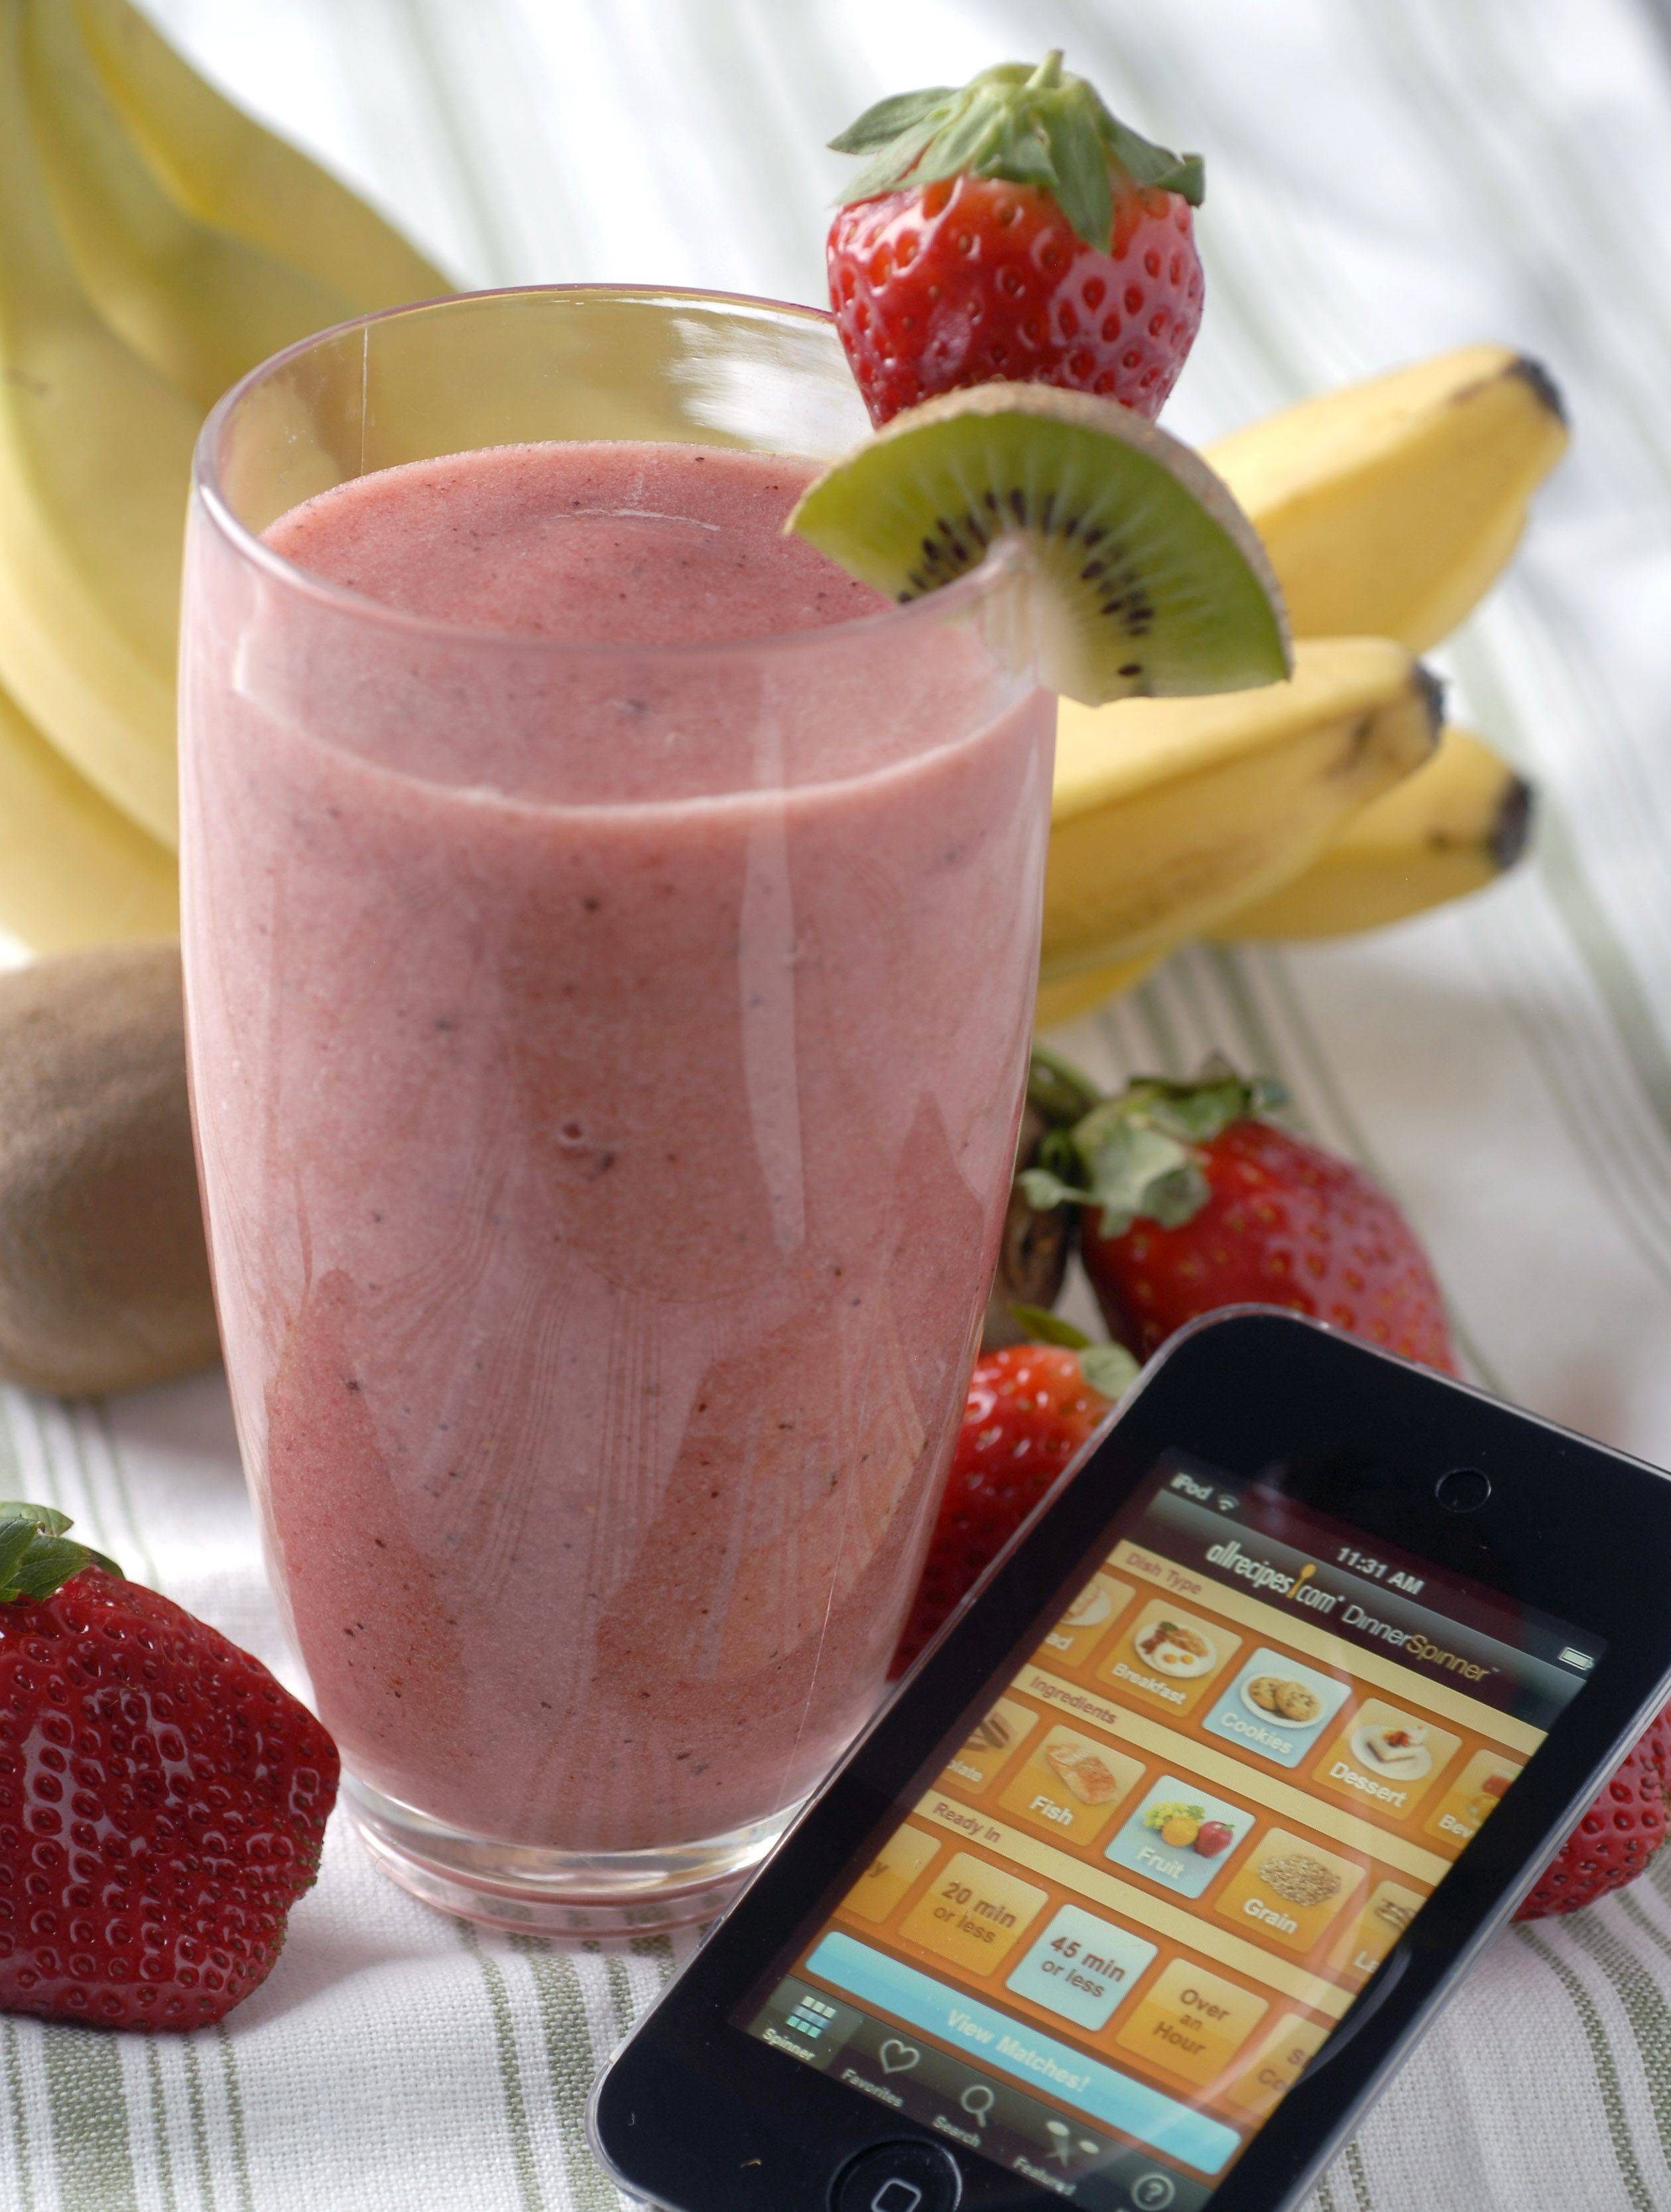 This smoothie recipe was found using the Healthy Recipes application. Pictured is the Dinner Spinner application from allrecipes.com.